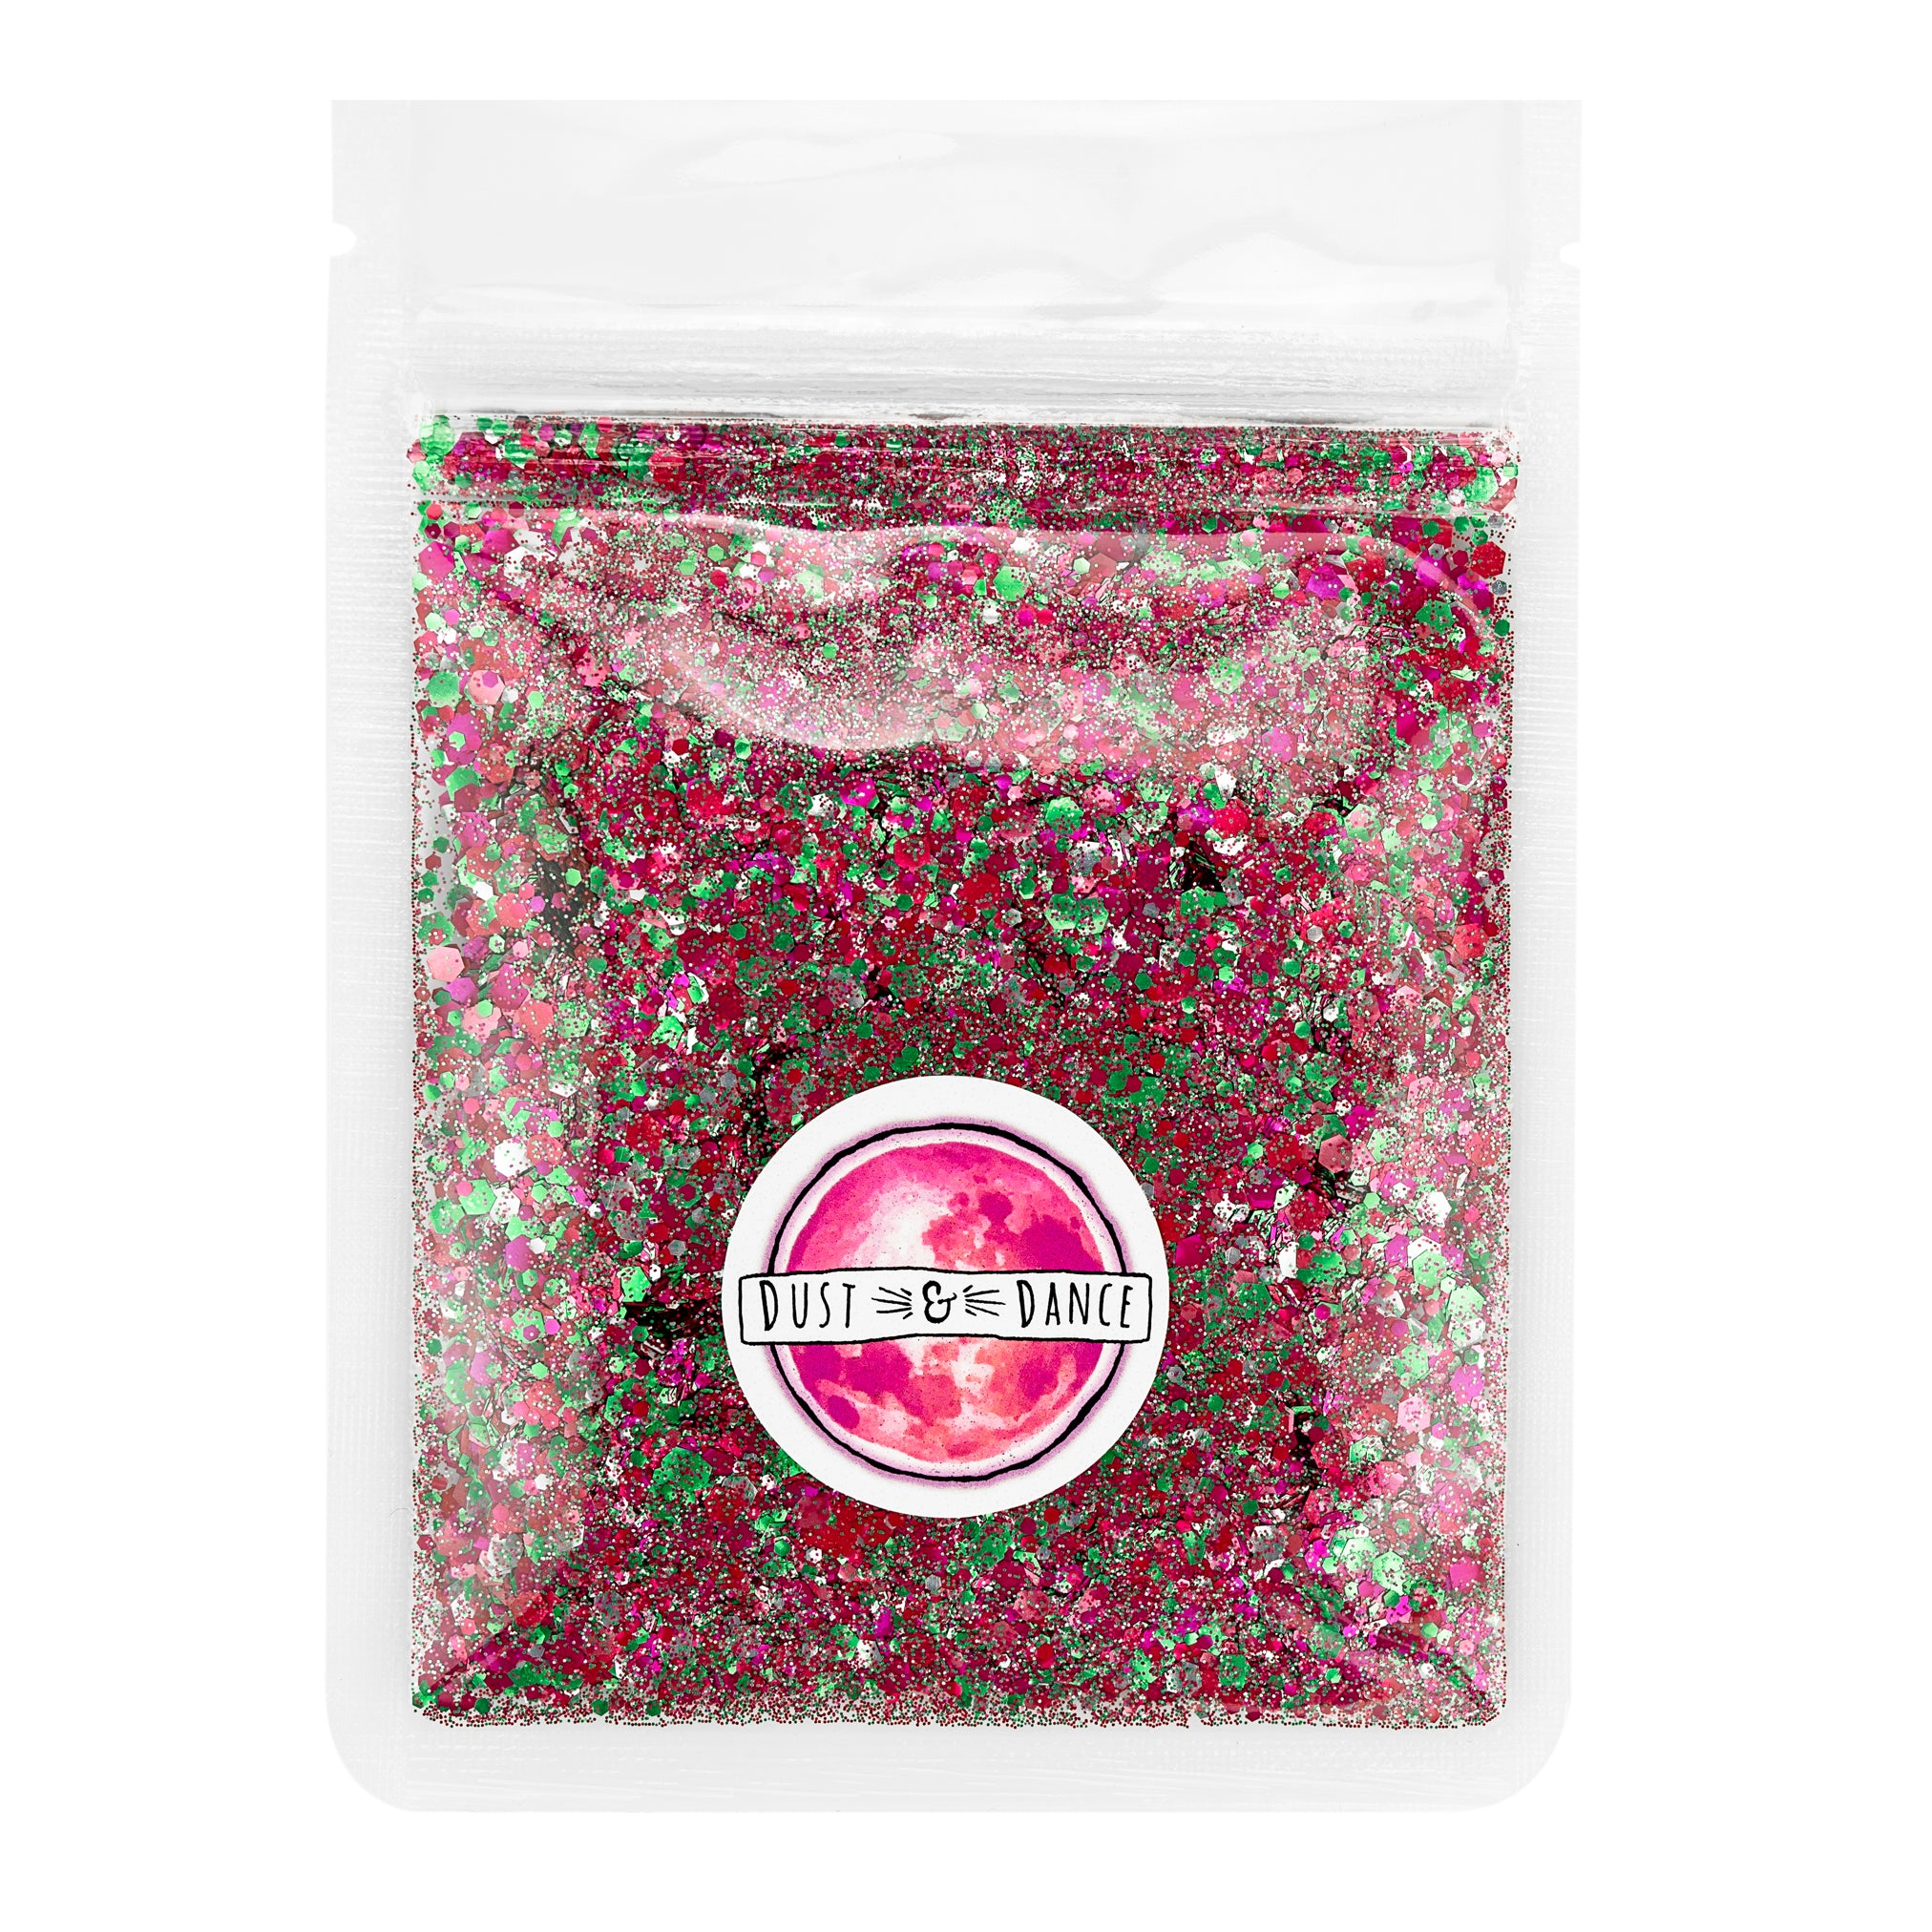 Dust and Dance Bio Biodegradable Eco Friendly Chunky Hair Face Body Festival Glitter Pink Mix 10g bulk pouch